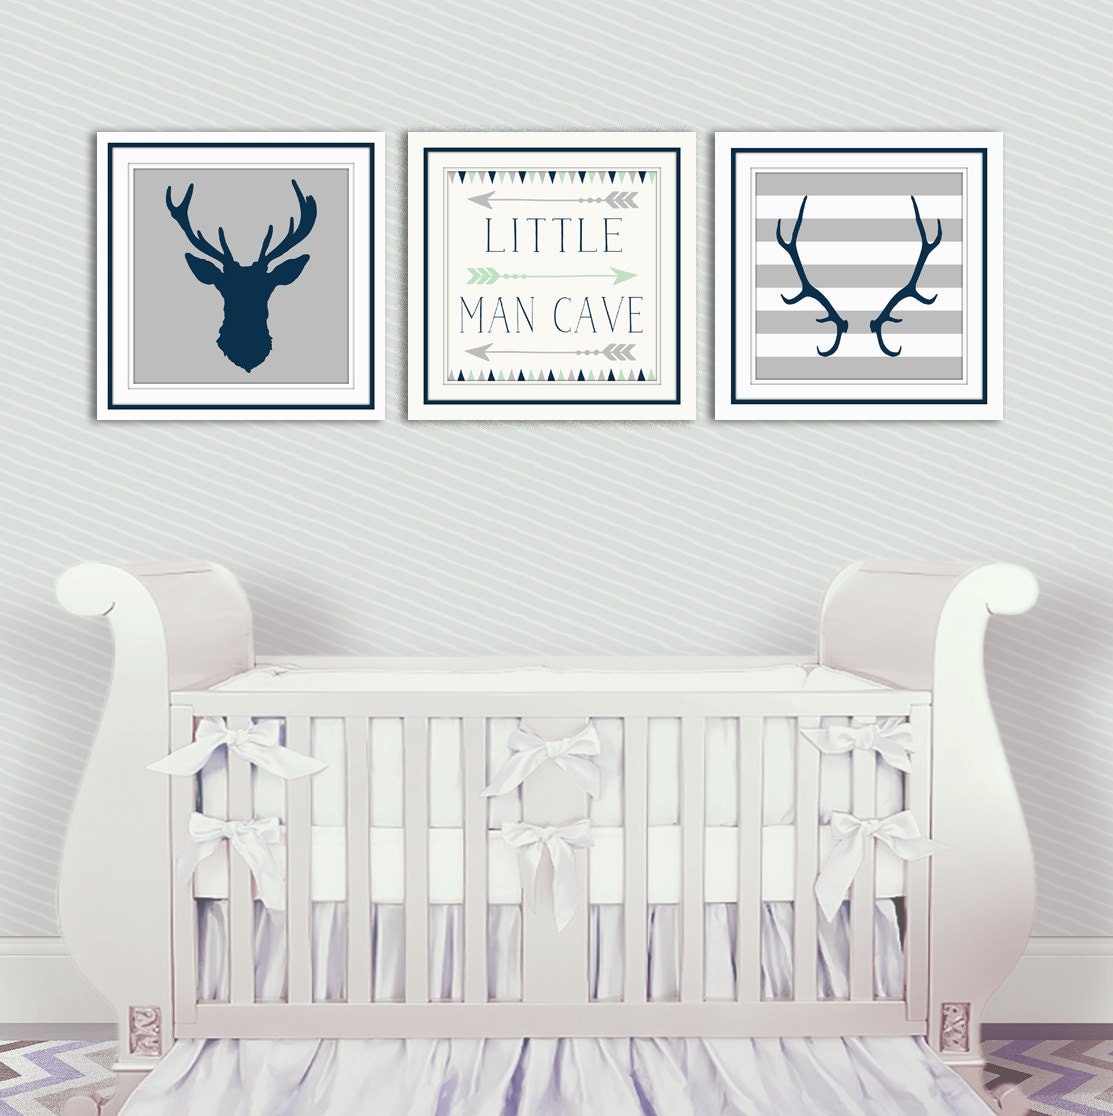 Baby Room Ideas Nursery Themes And Decor: Baby Boy Nursery Decor Antlers Deer Head Arrows Little